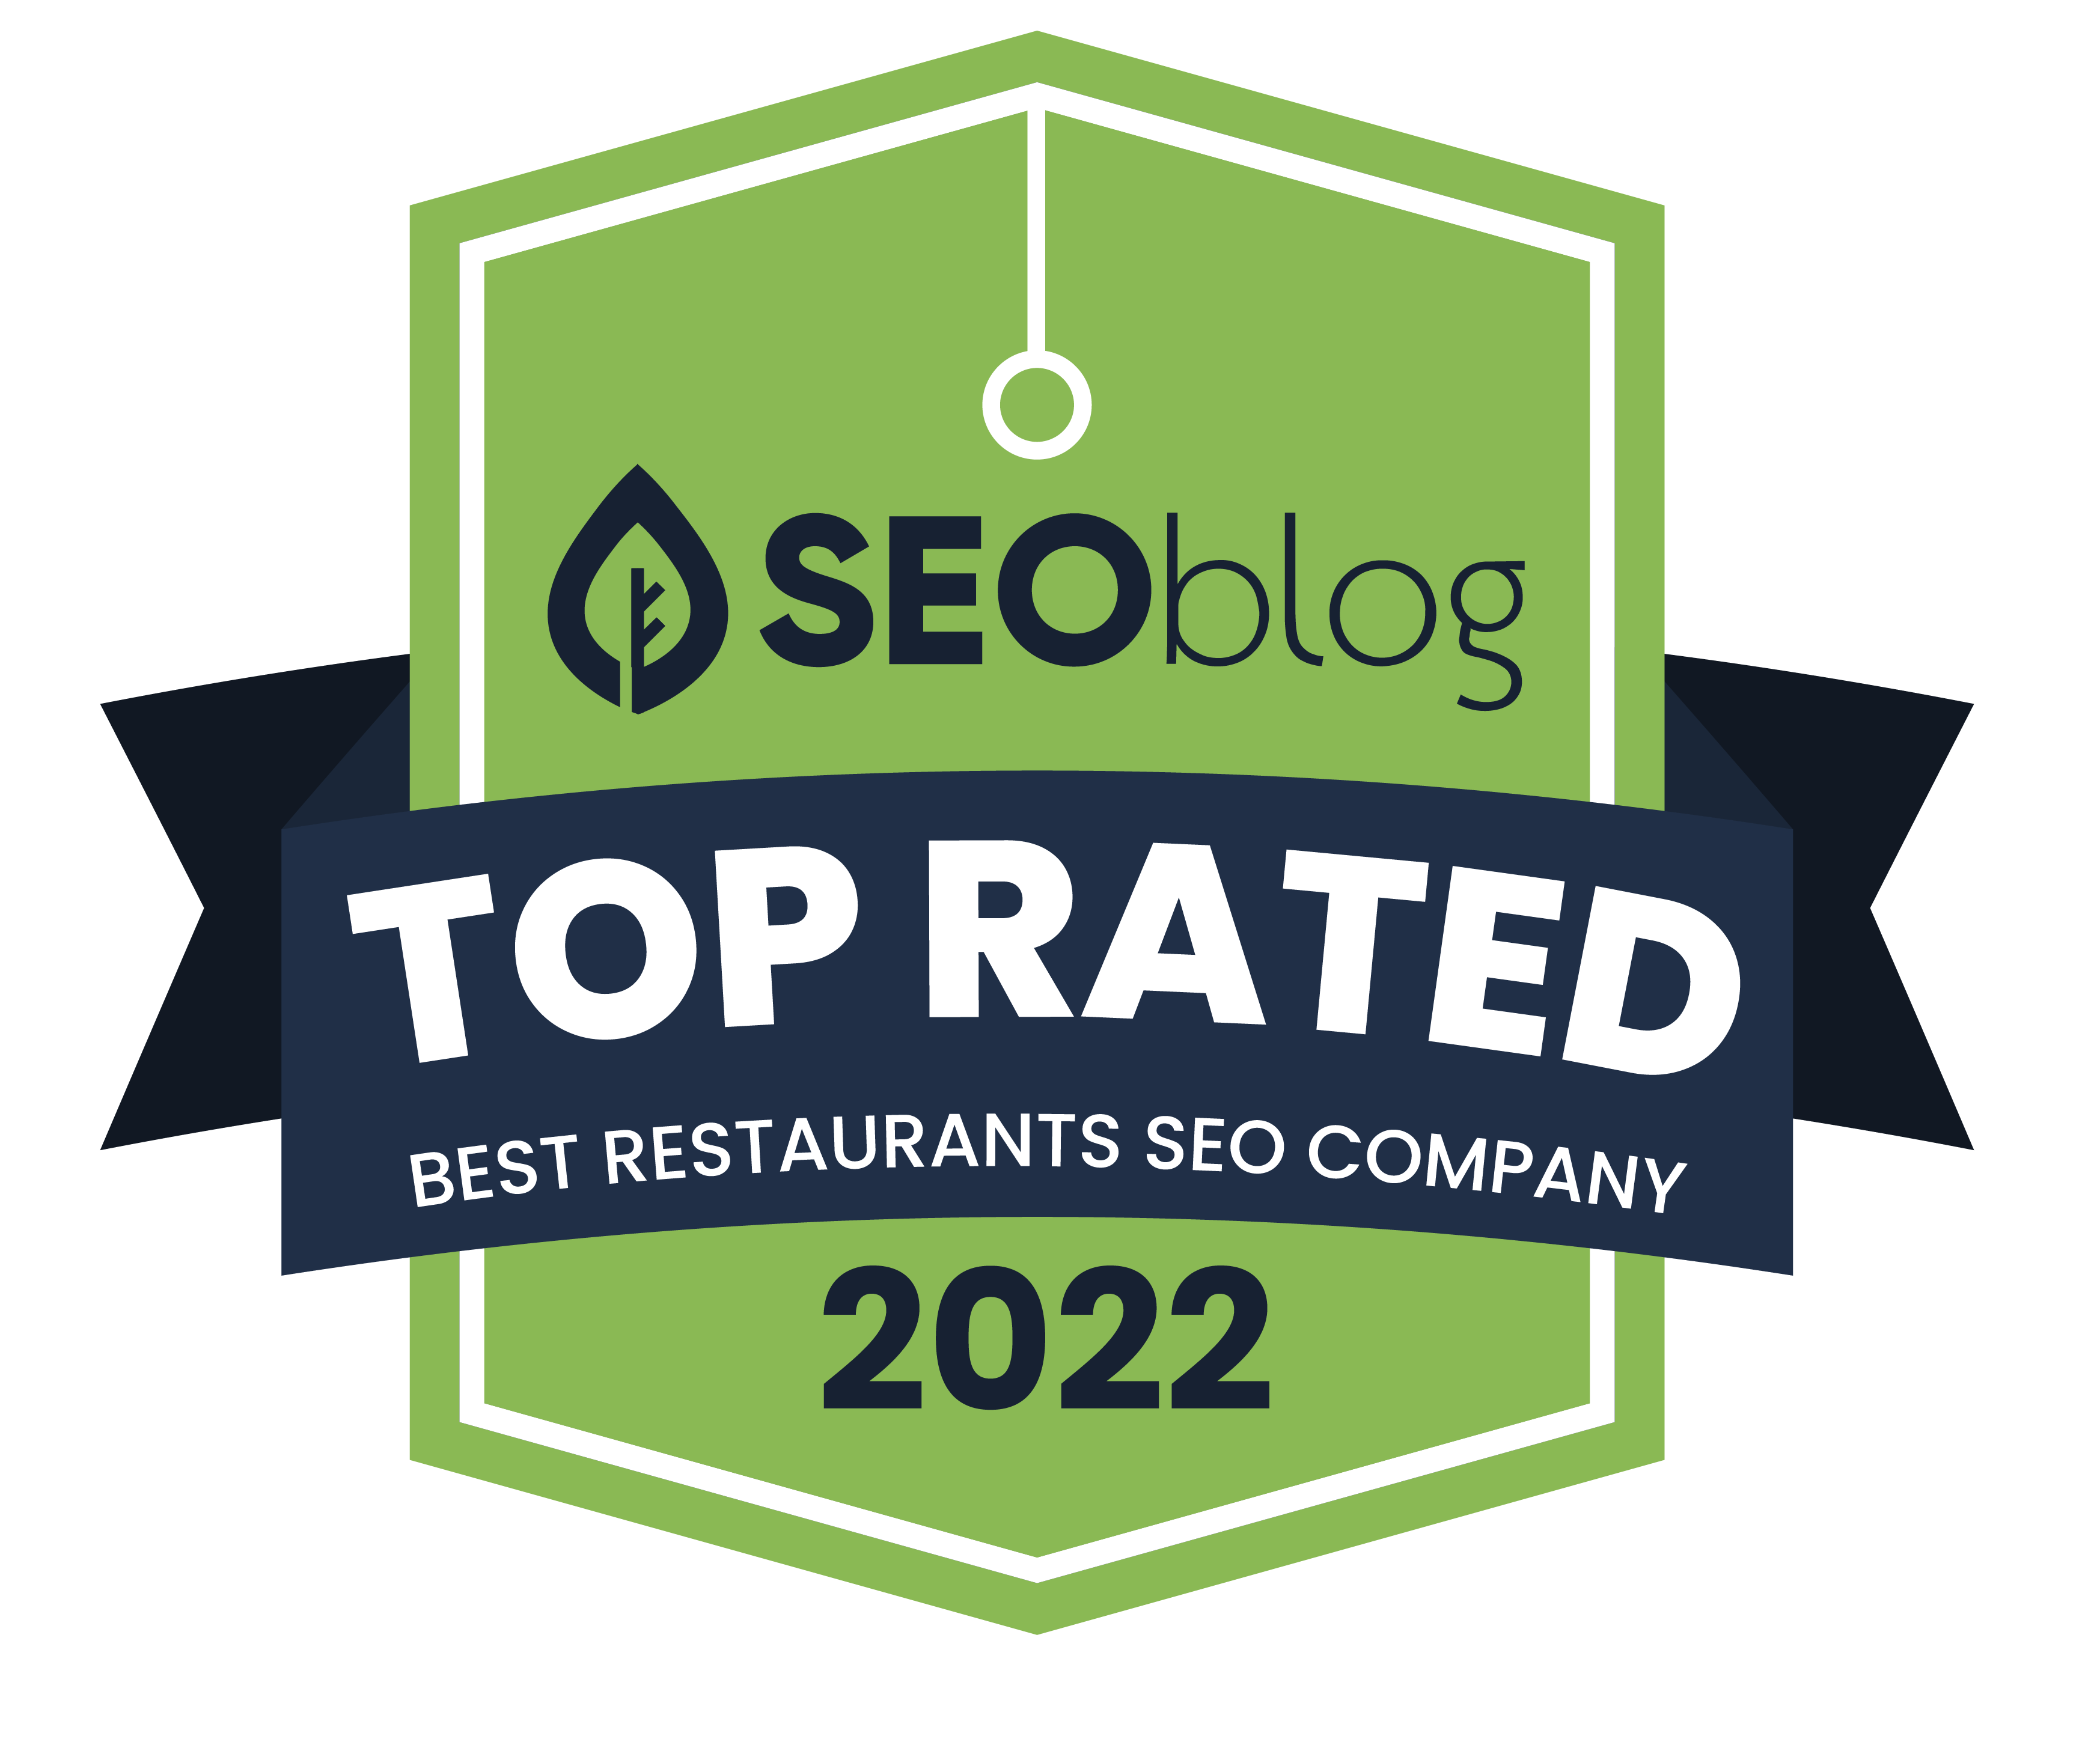 Best Restaurants SEO Companies